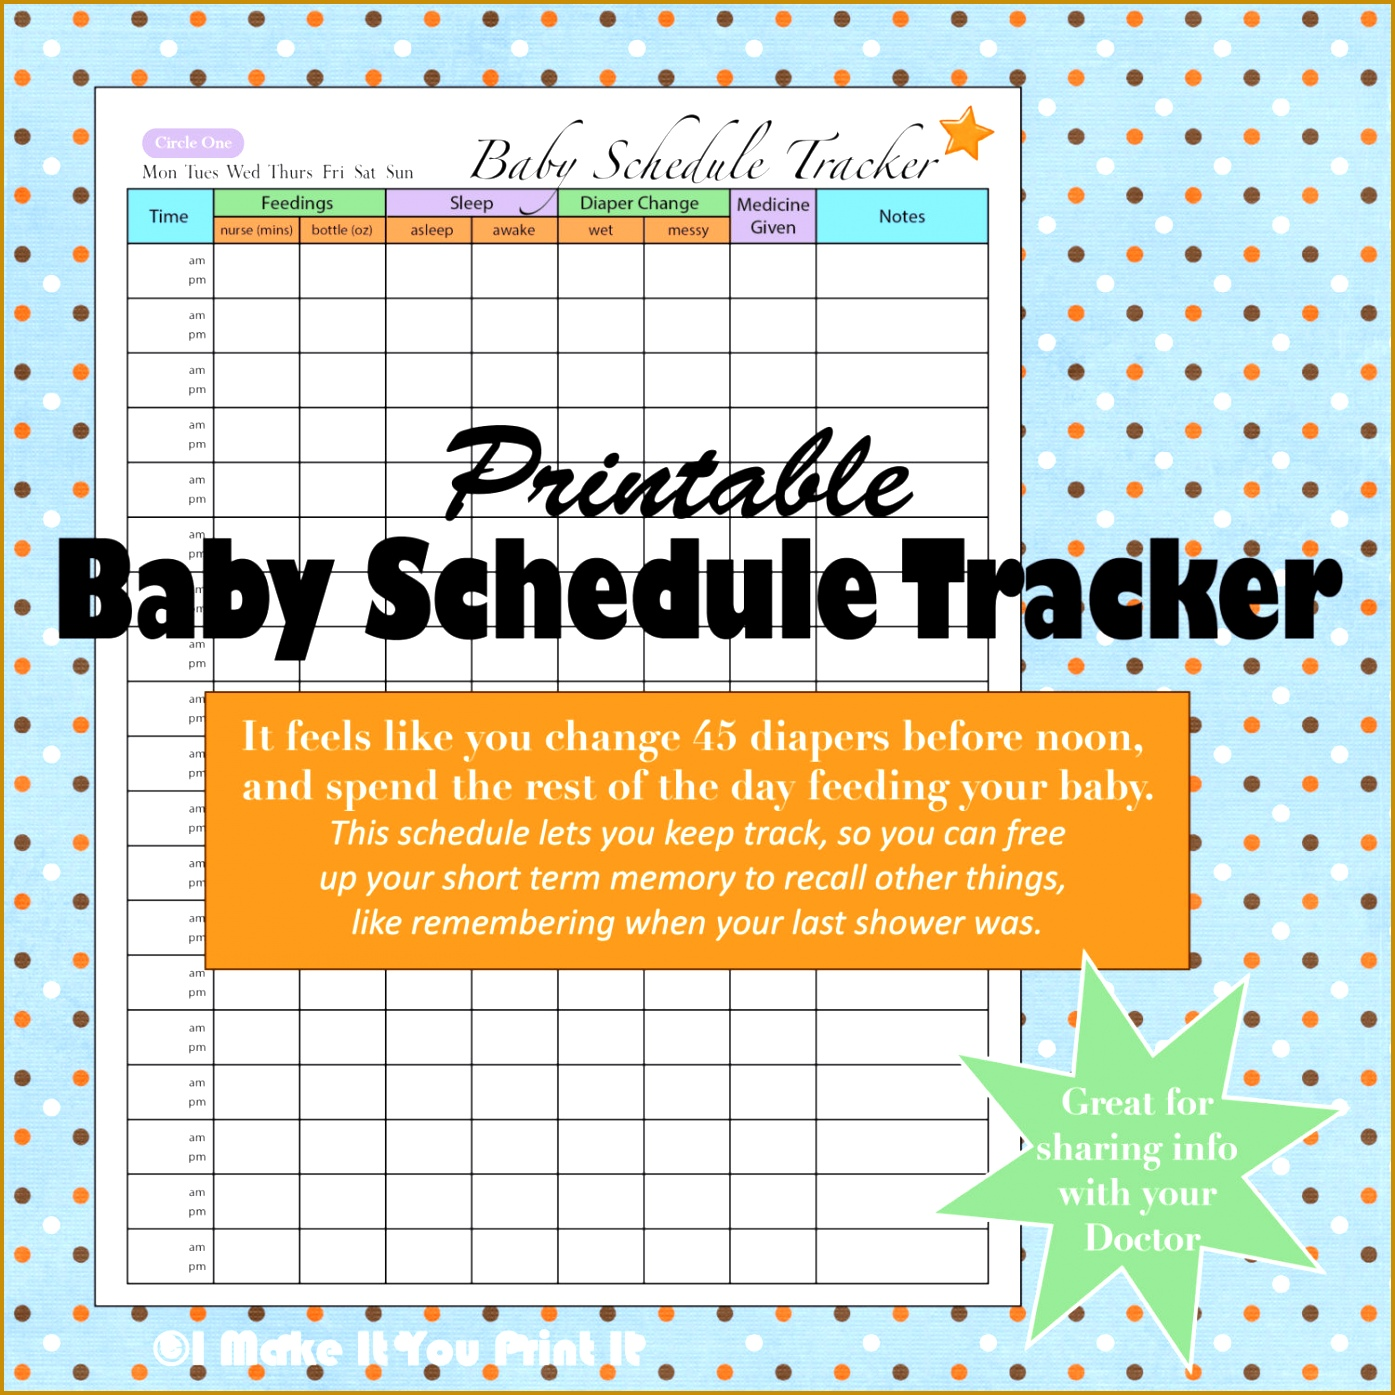 Baby feeding schedule template 88494 printable baby schedule tracker baby feeding schedule template 88494 printable baby schedule tracker and twins schedule tracker 15001500 maxwellsz